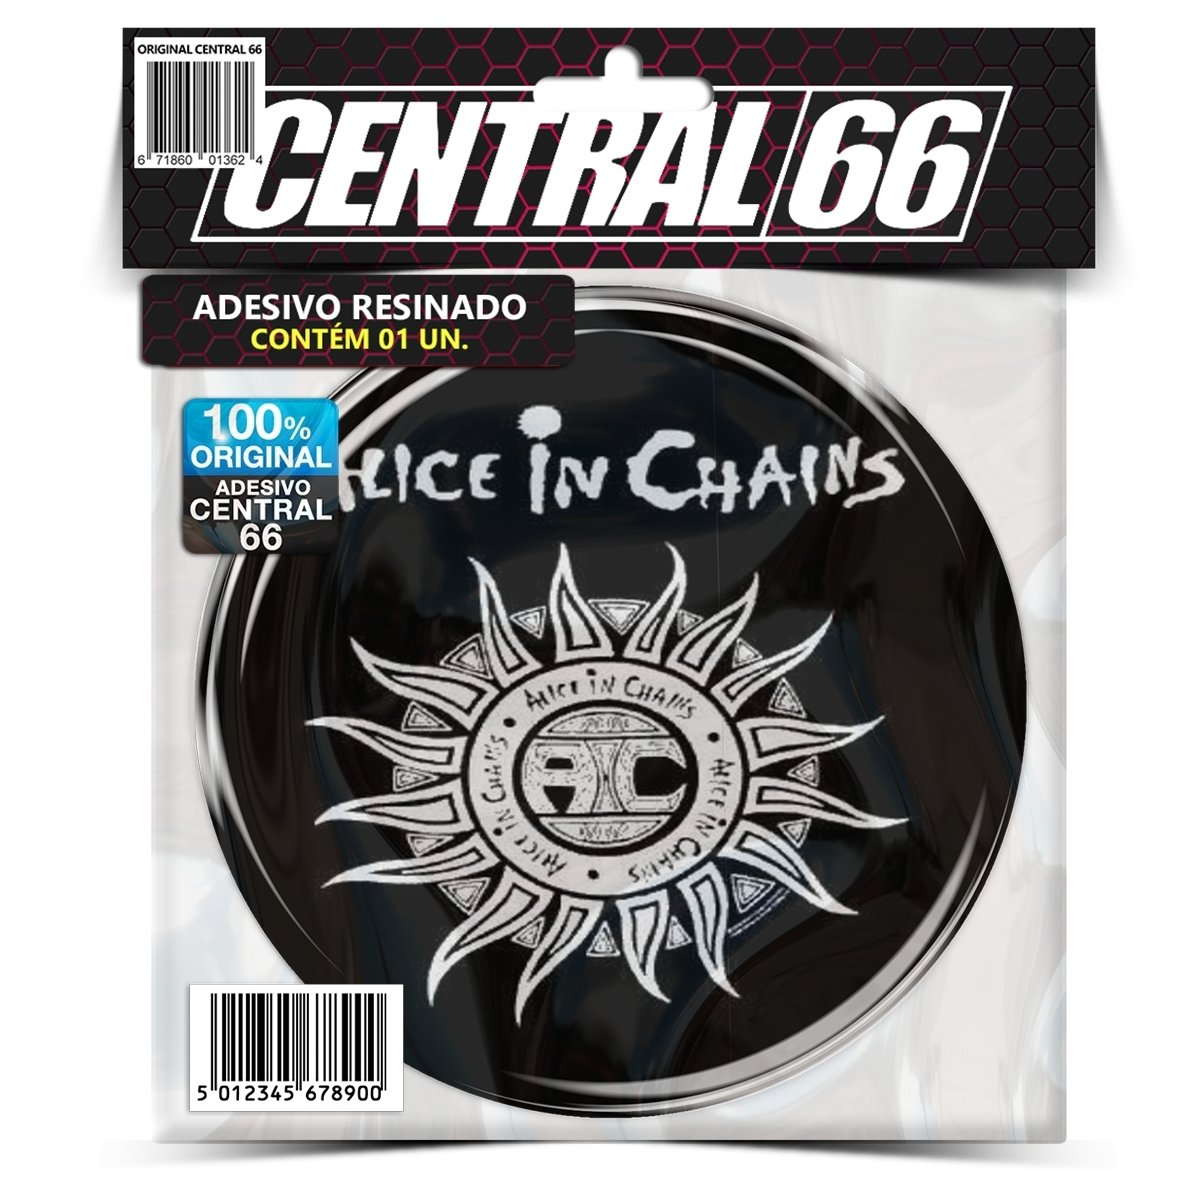 Adesivo Redondo Alice in Chains Sol – Central 66